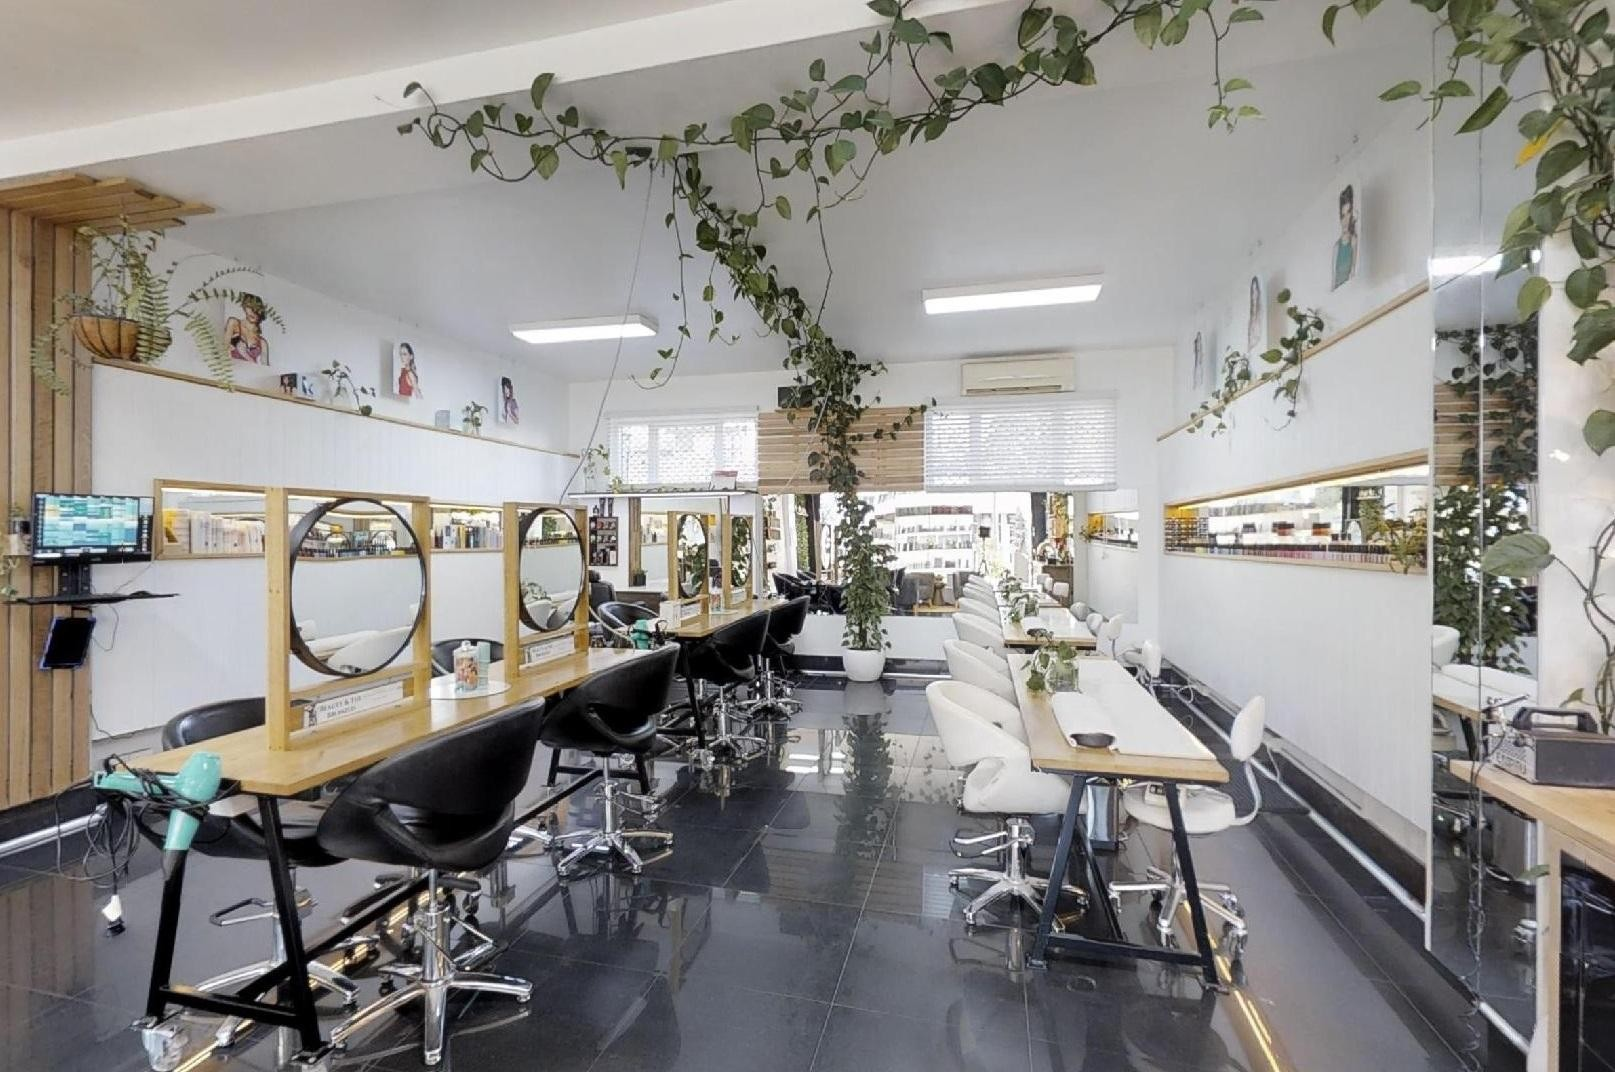 Market Leading Hair and Beauty Salon and Skin Clinic For Sale Servicing Port Stephens and Newcastle